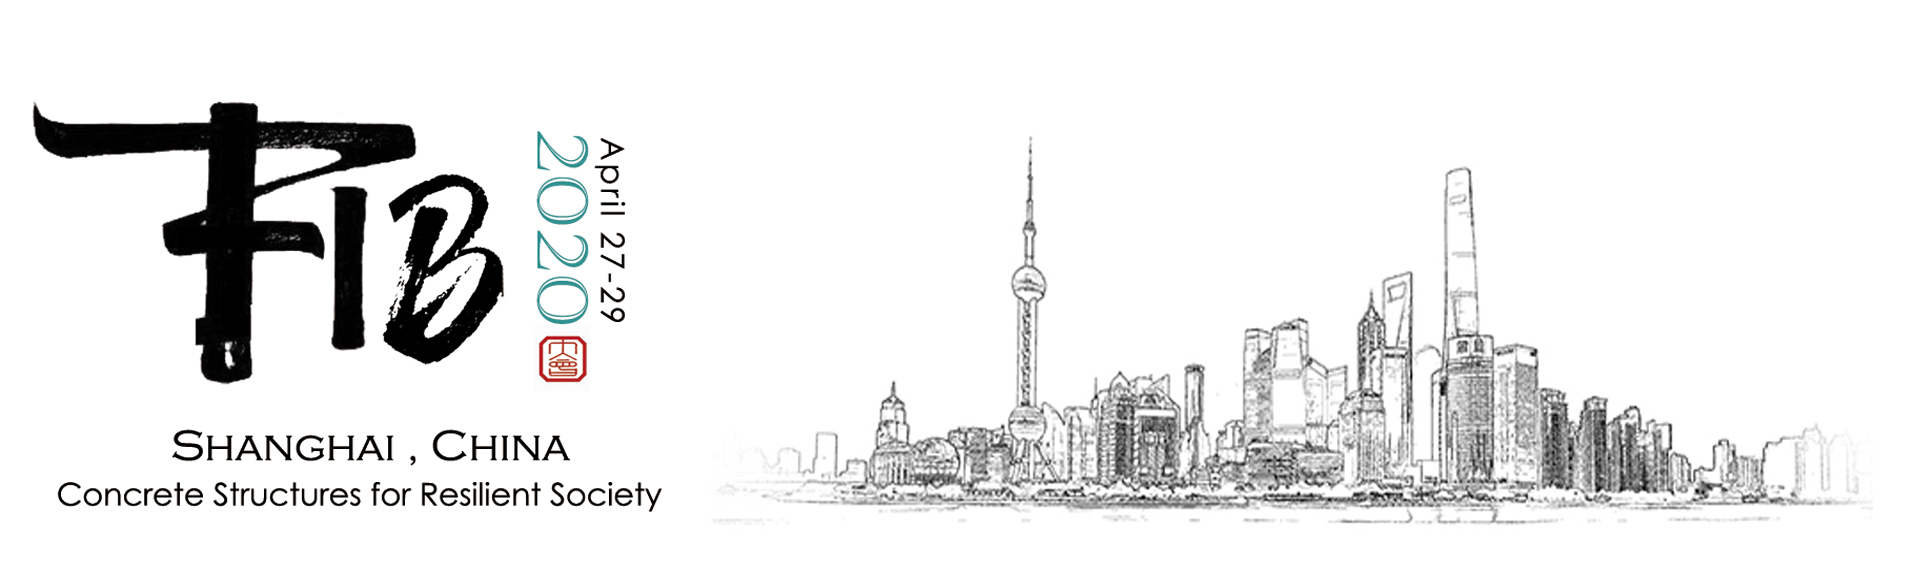 fib Symposium in Shanghai, China